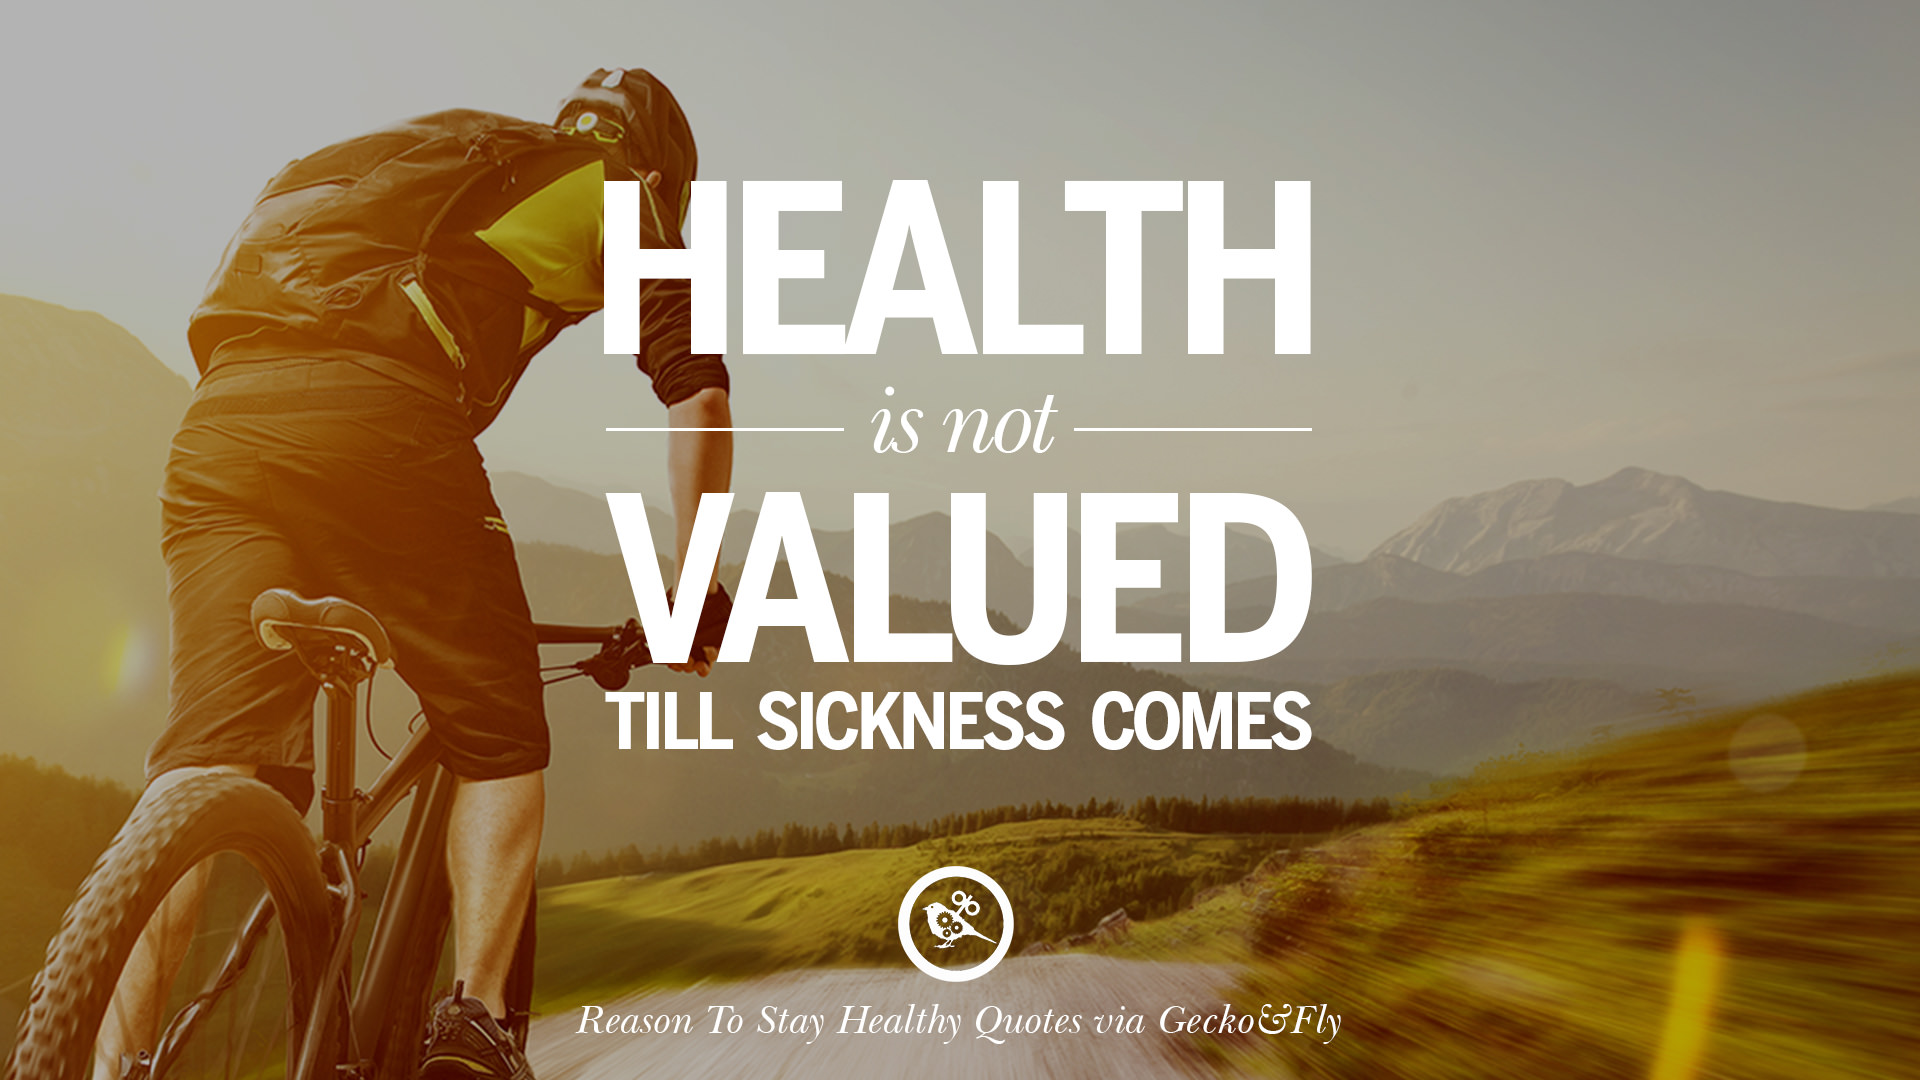 Healthy Quotes 10 Motivational Quotes On Reasons To Stay Healthy And Exercise